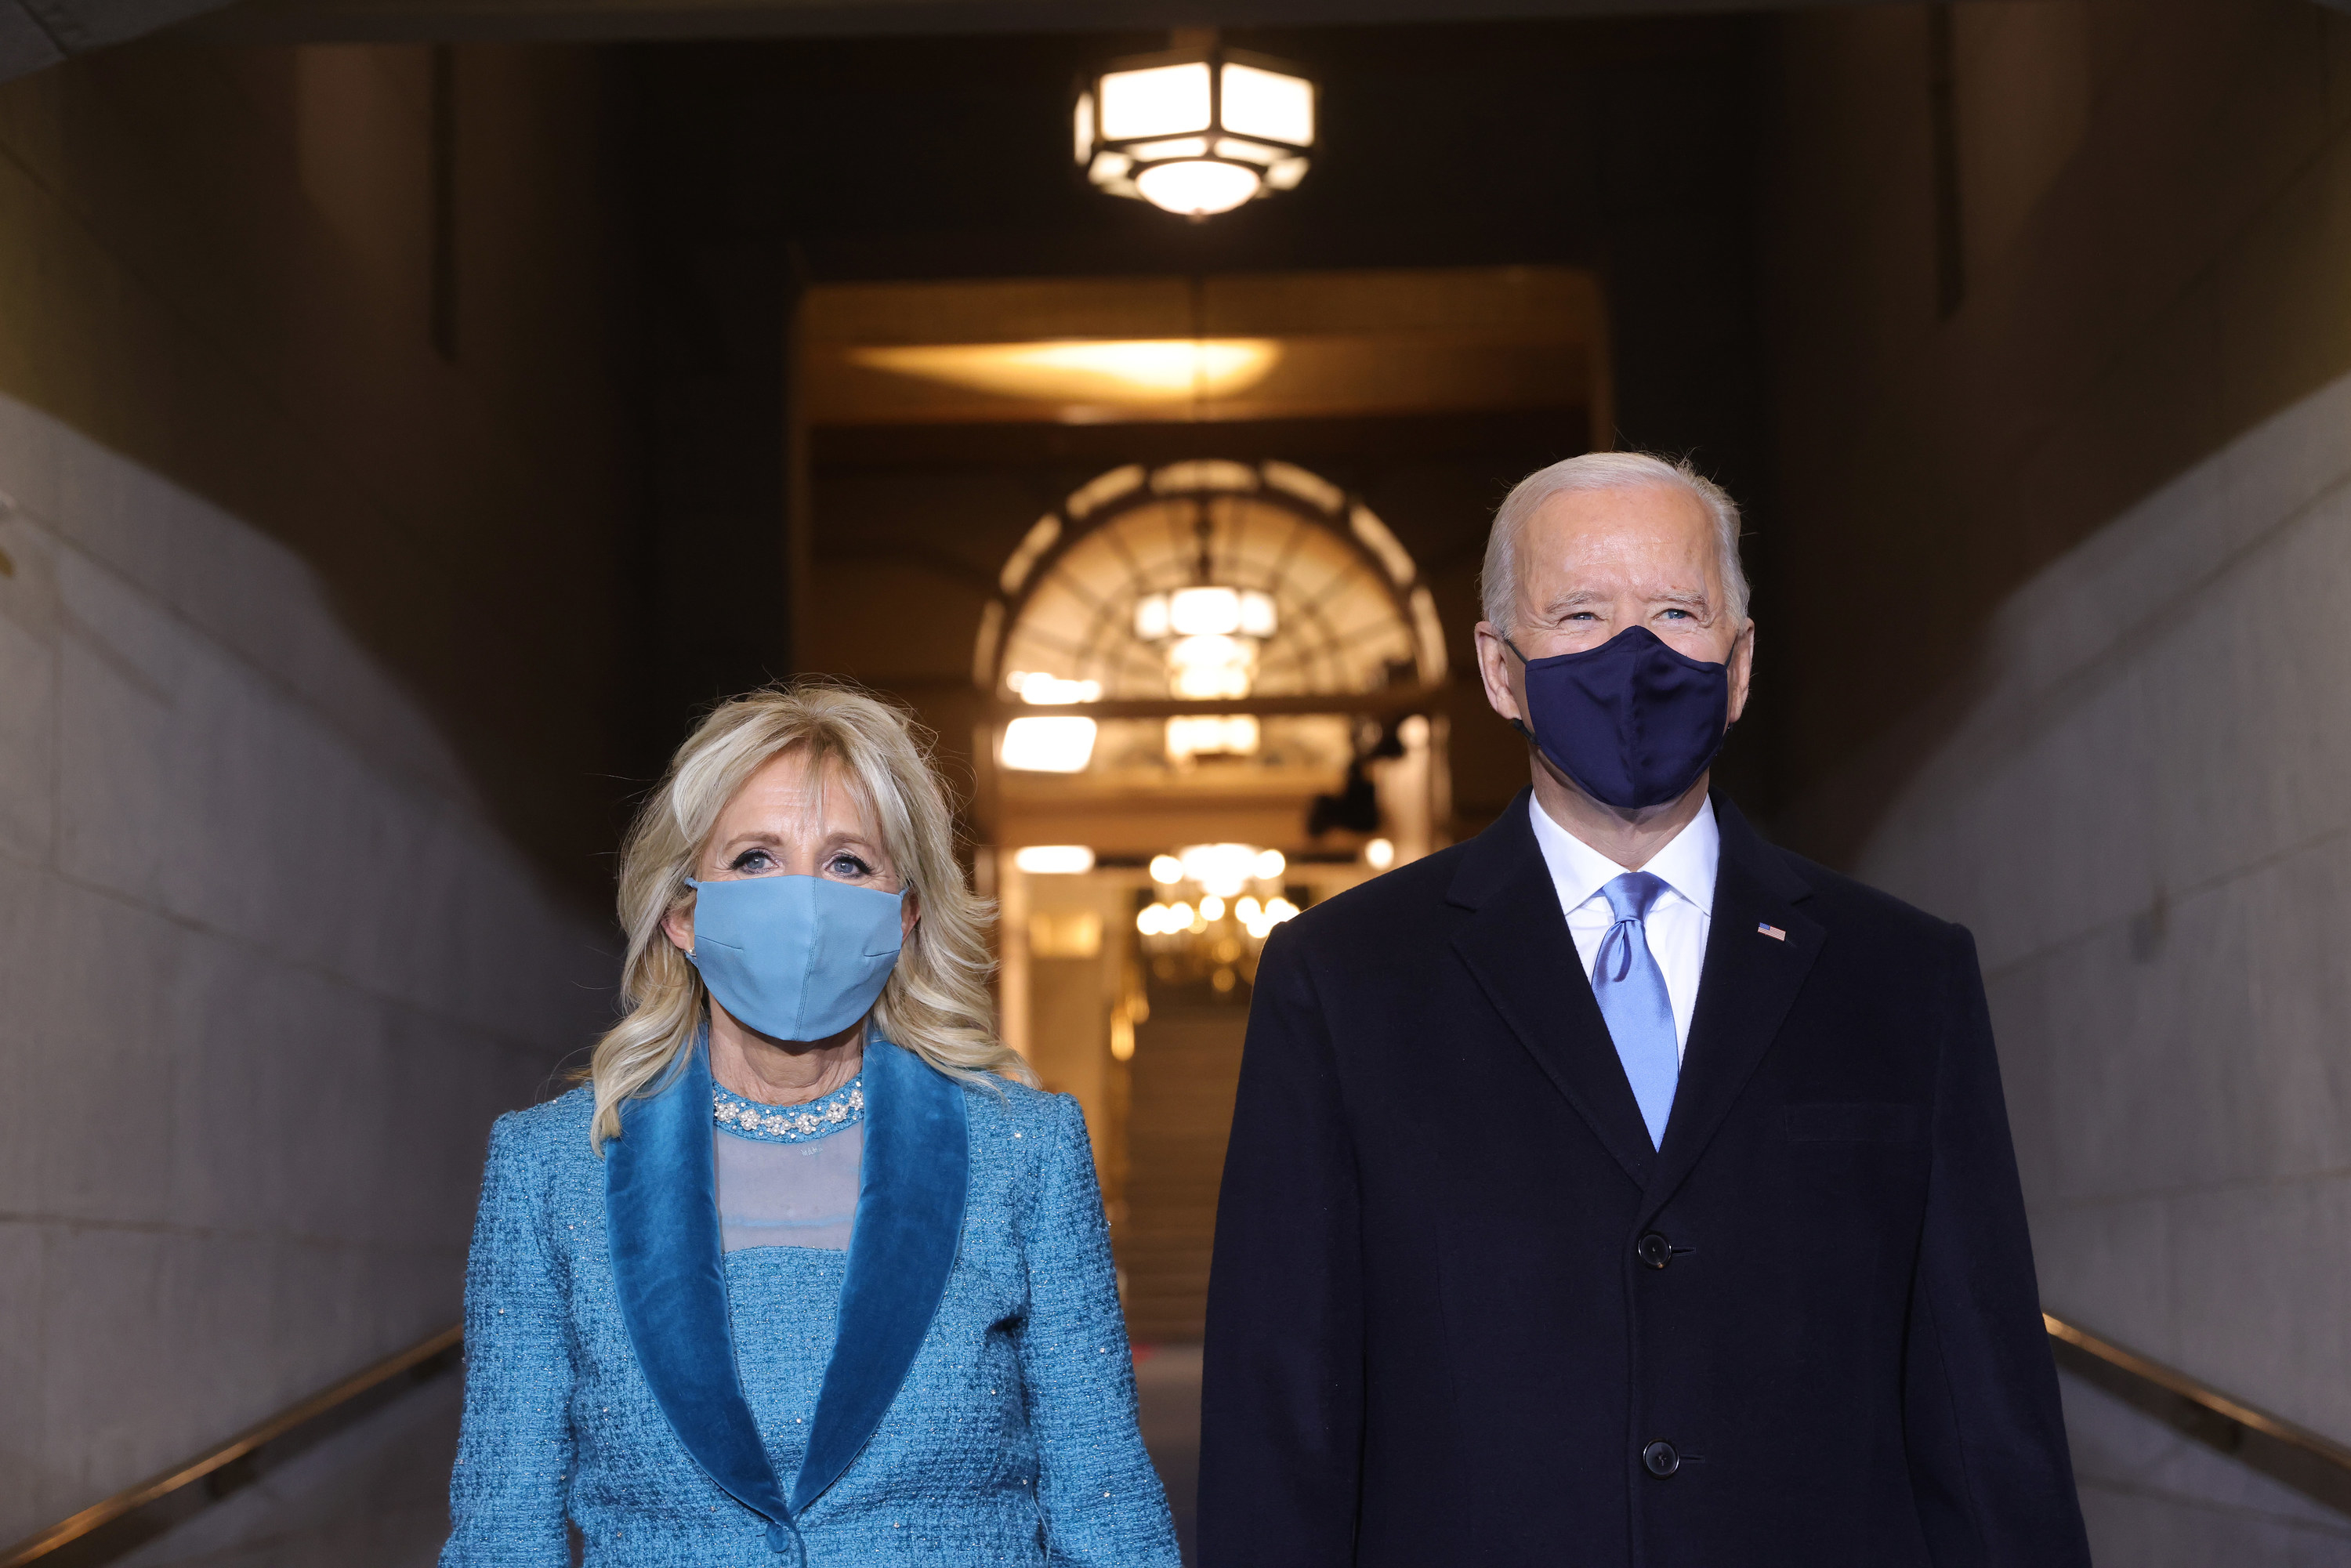 U.S. President Joe Biden with a face mask and Jill Biden with a blue face mask standing on the West Front of the U.S. Capitol on January 20, 2021 in Washington, DC. during today's inauguration ceremony.